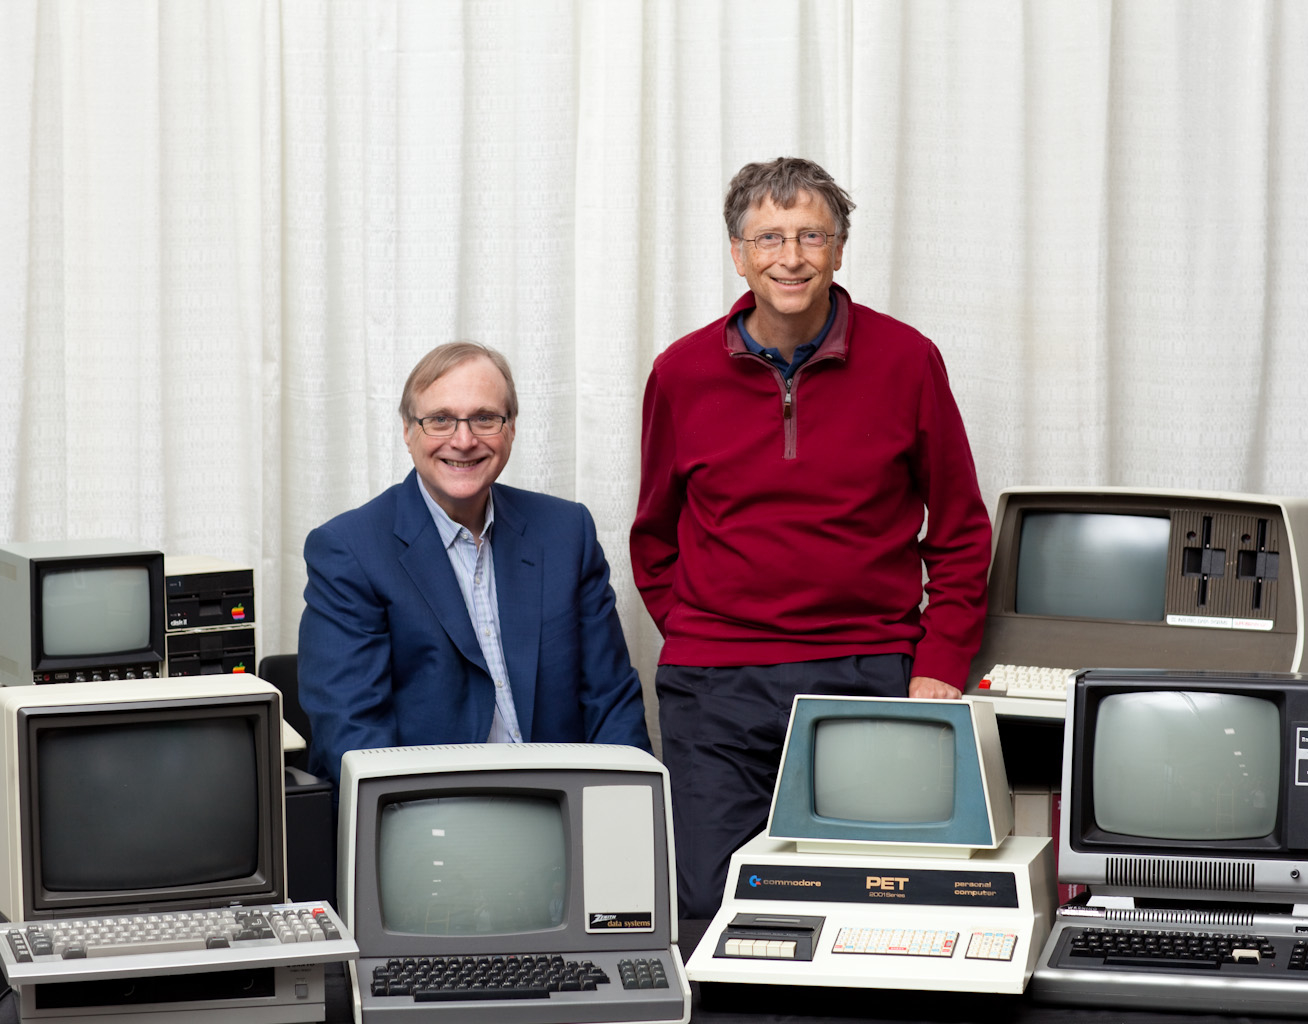 Bill Gates and Paul Allen.jpg